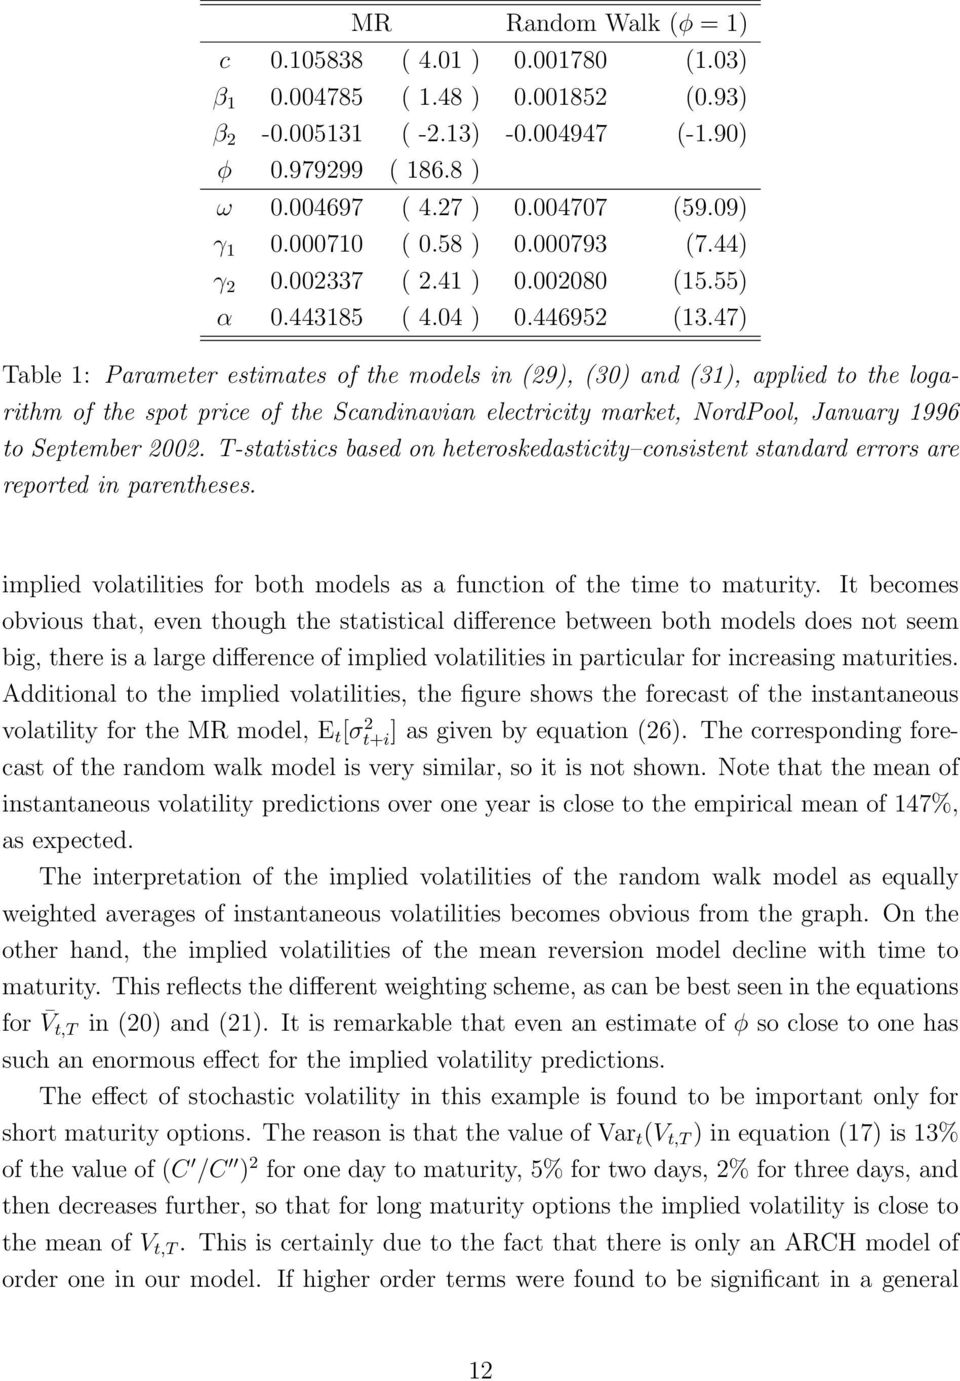 47) Table 1: Parameter estimates of the models in (29), (30) and (31), applied to the logarithm of the spot price of the Scandinavian electricity market, NordPool, January 1996 to September 2002.